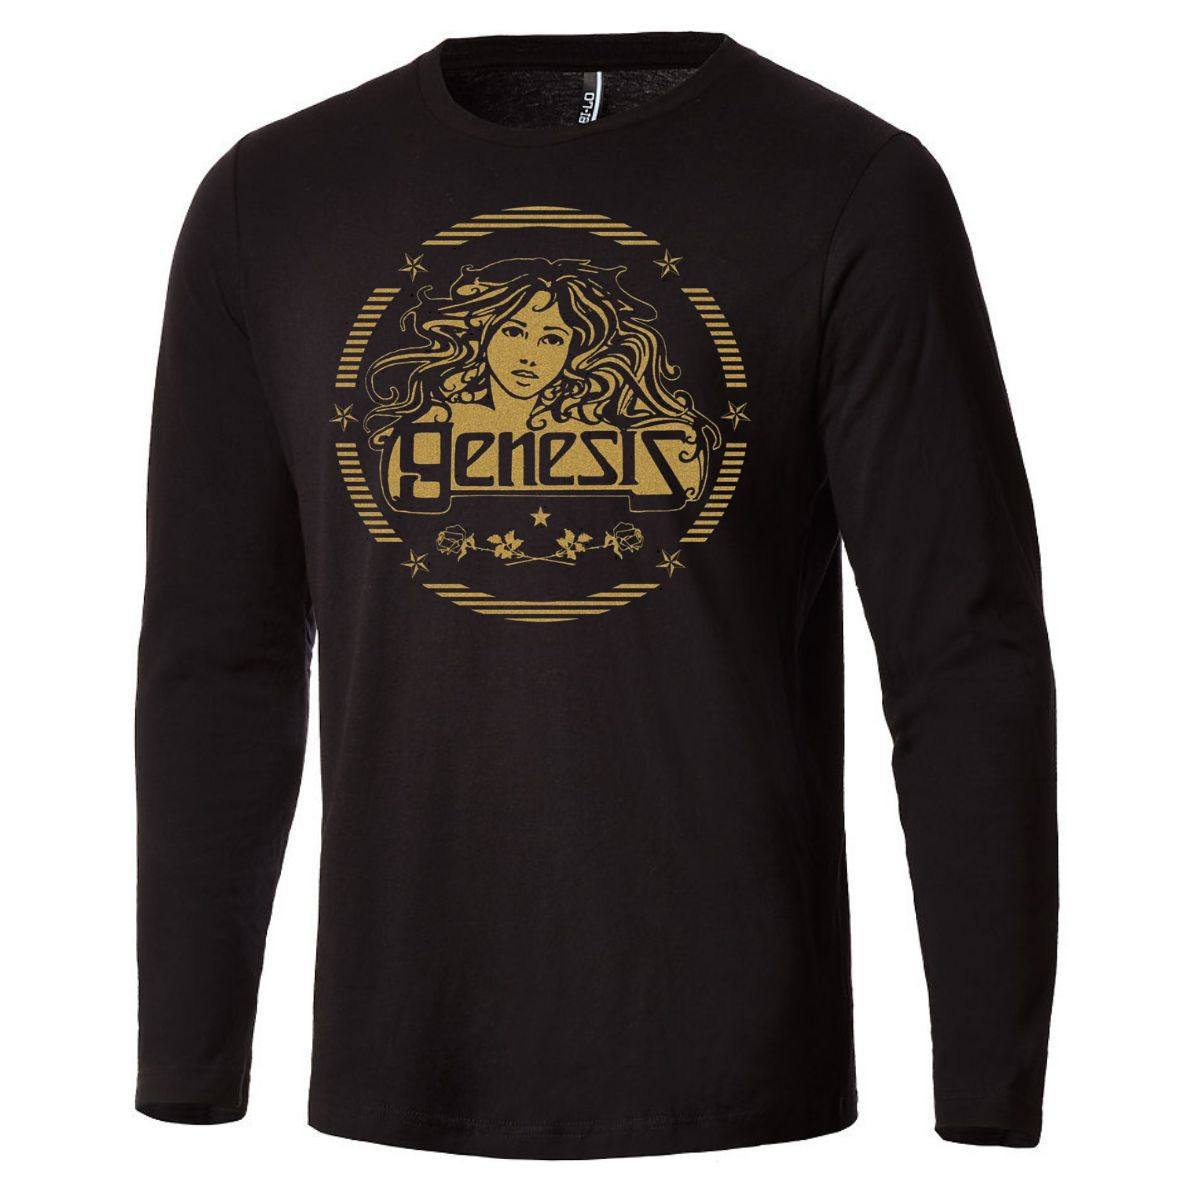 Golden Goddess Long Sleeve T-Shirt